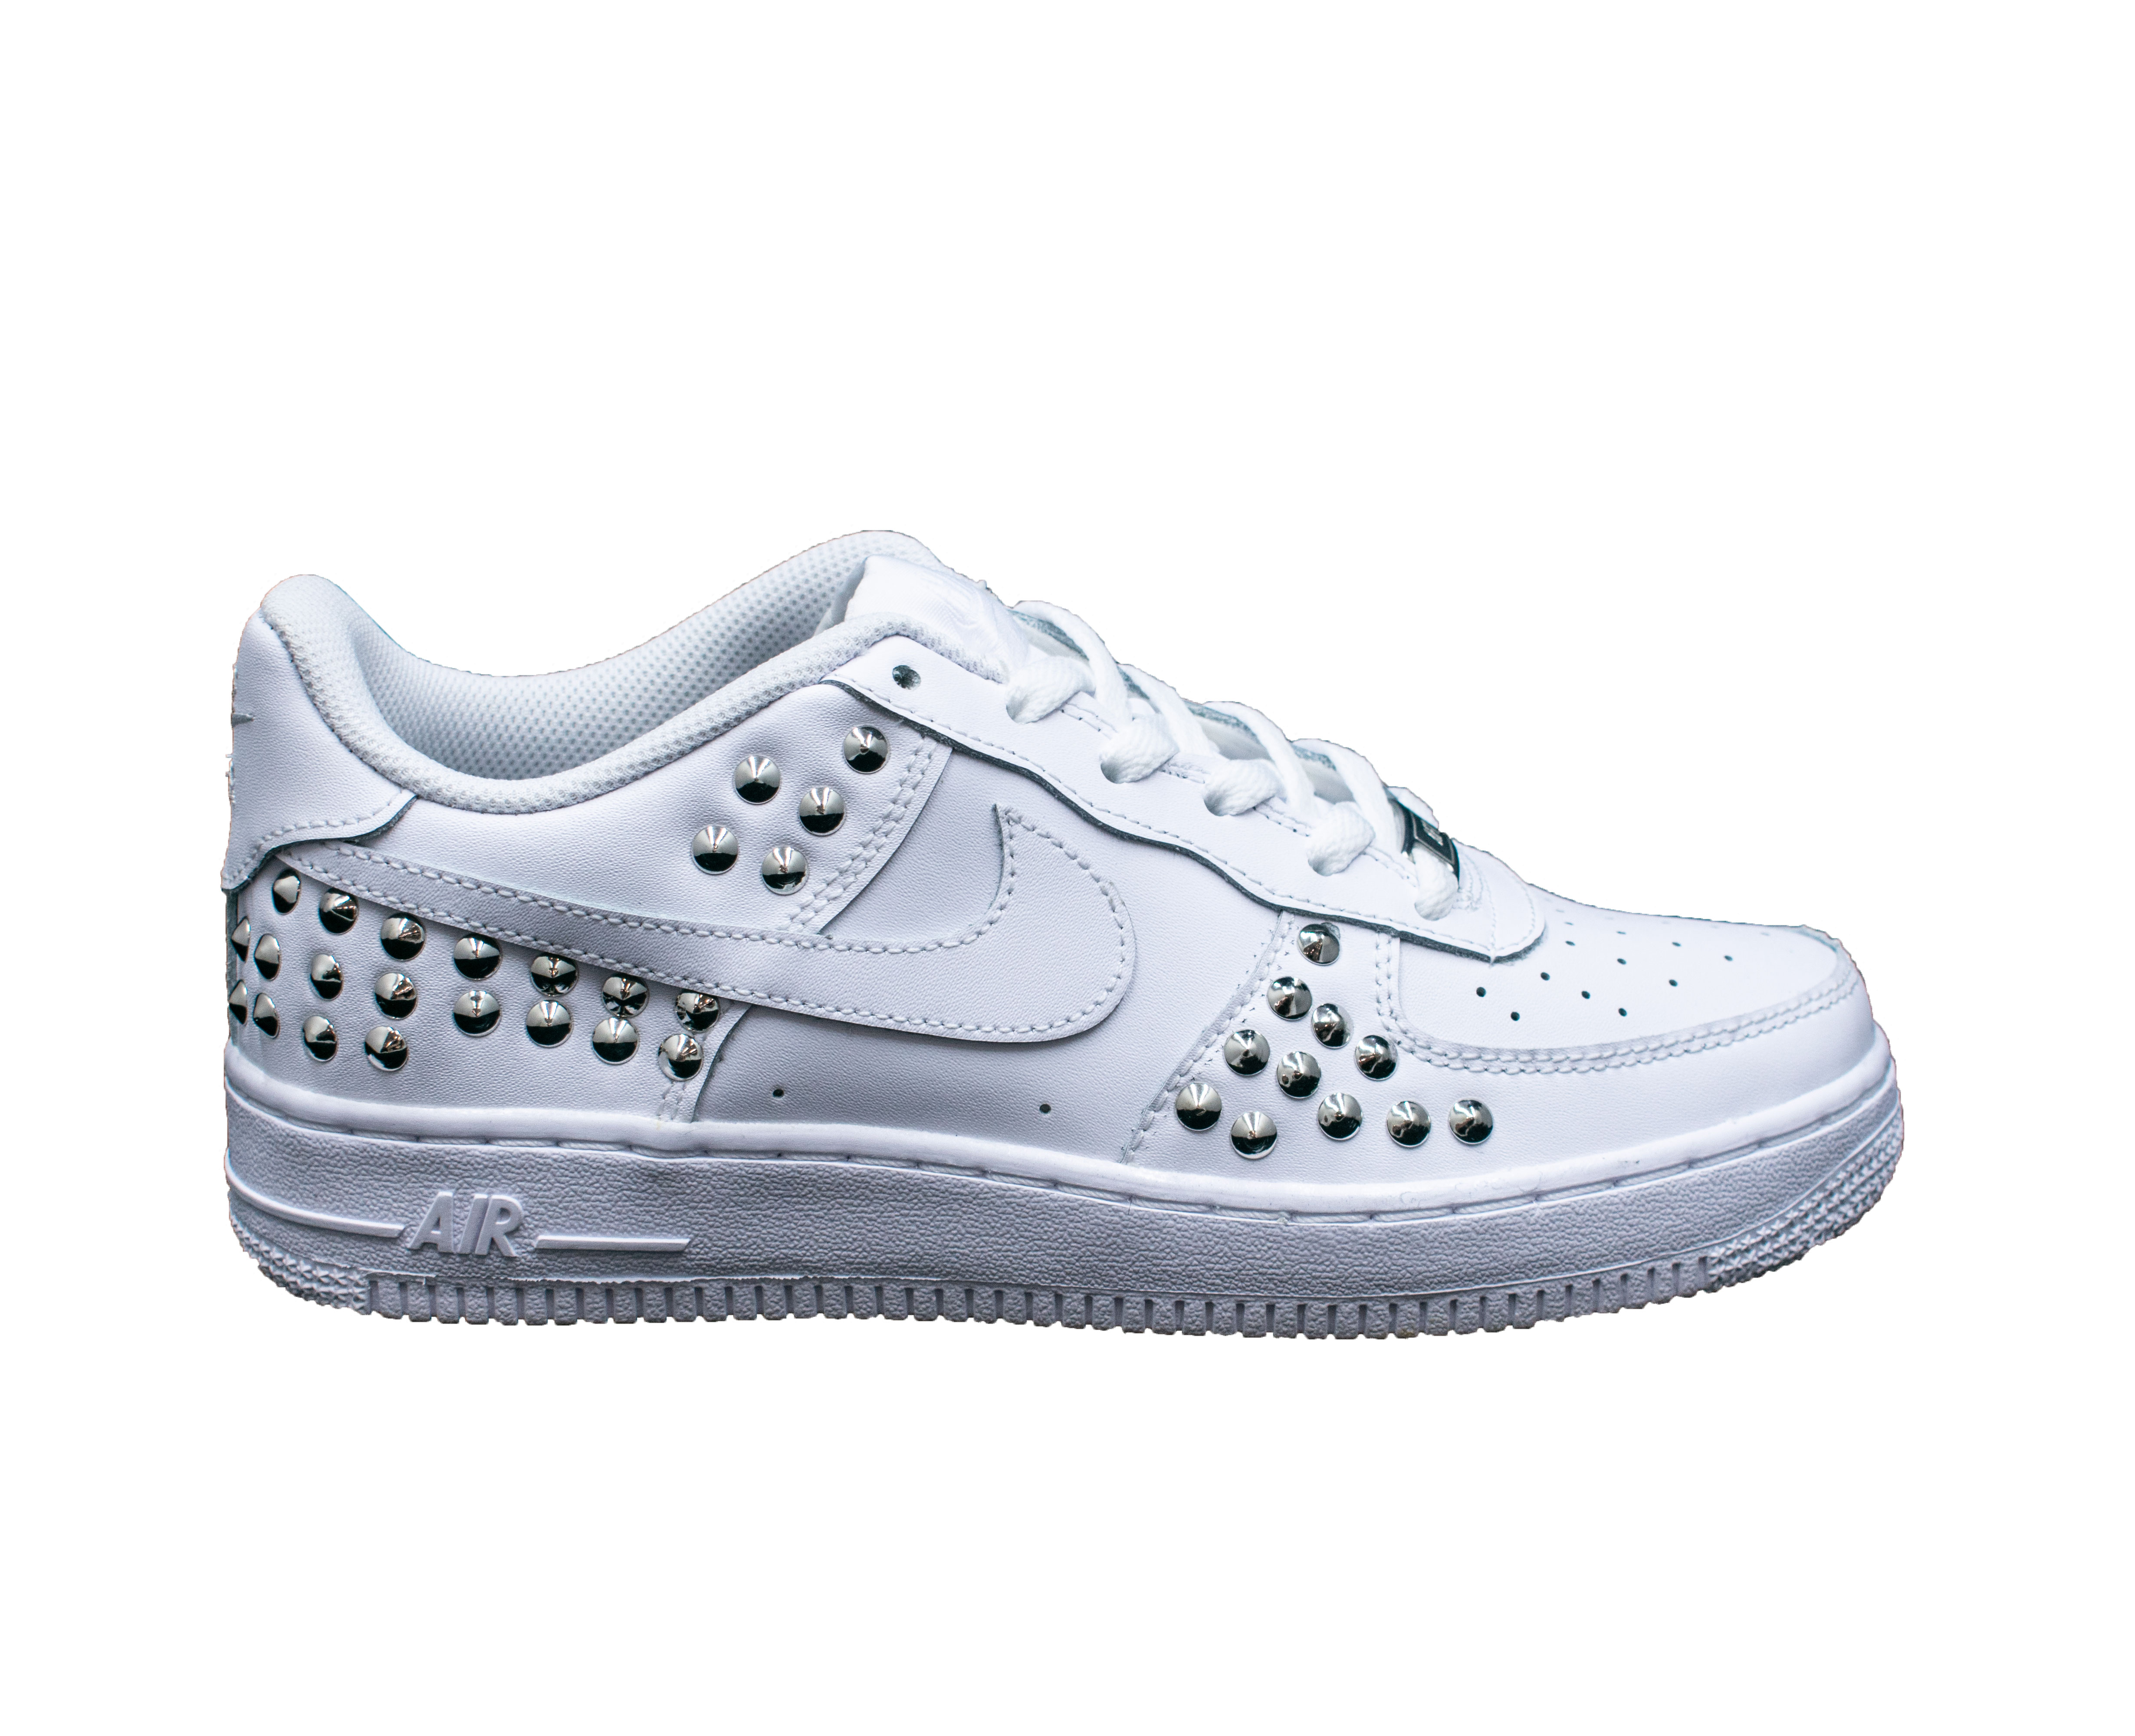 Pierrot Nike air force 1 07 borchie white Donna | Pierrot calzature